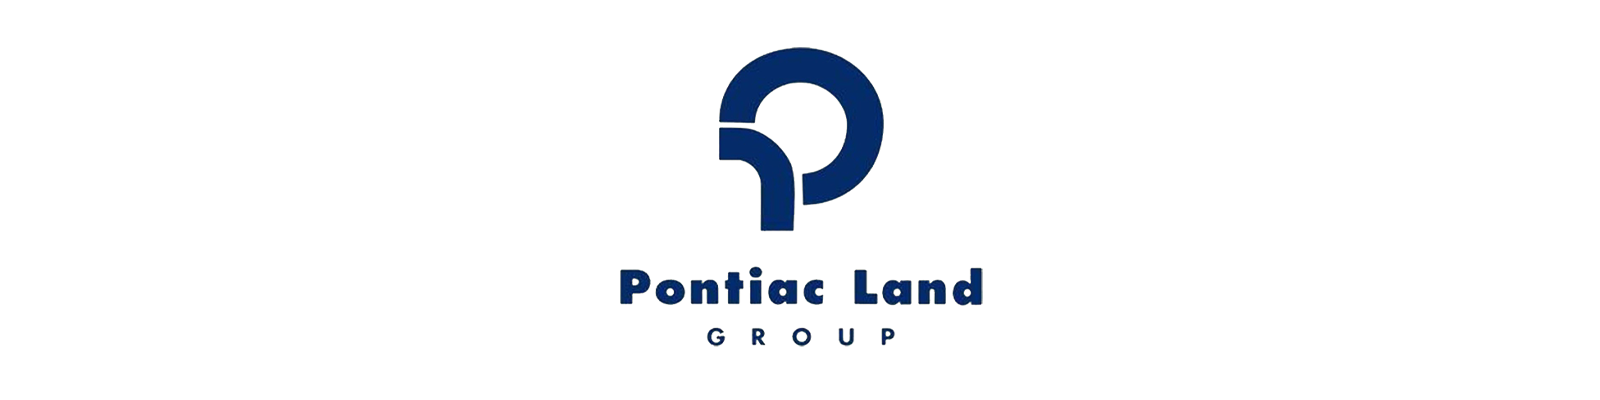 Pontiac Land Development